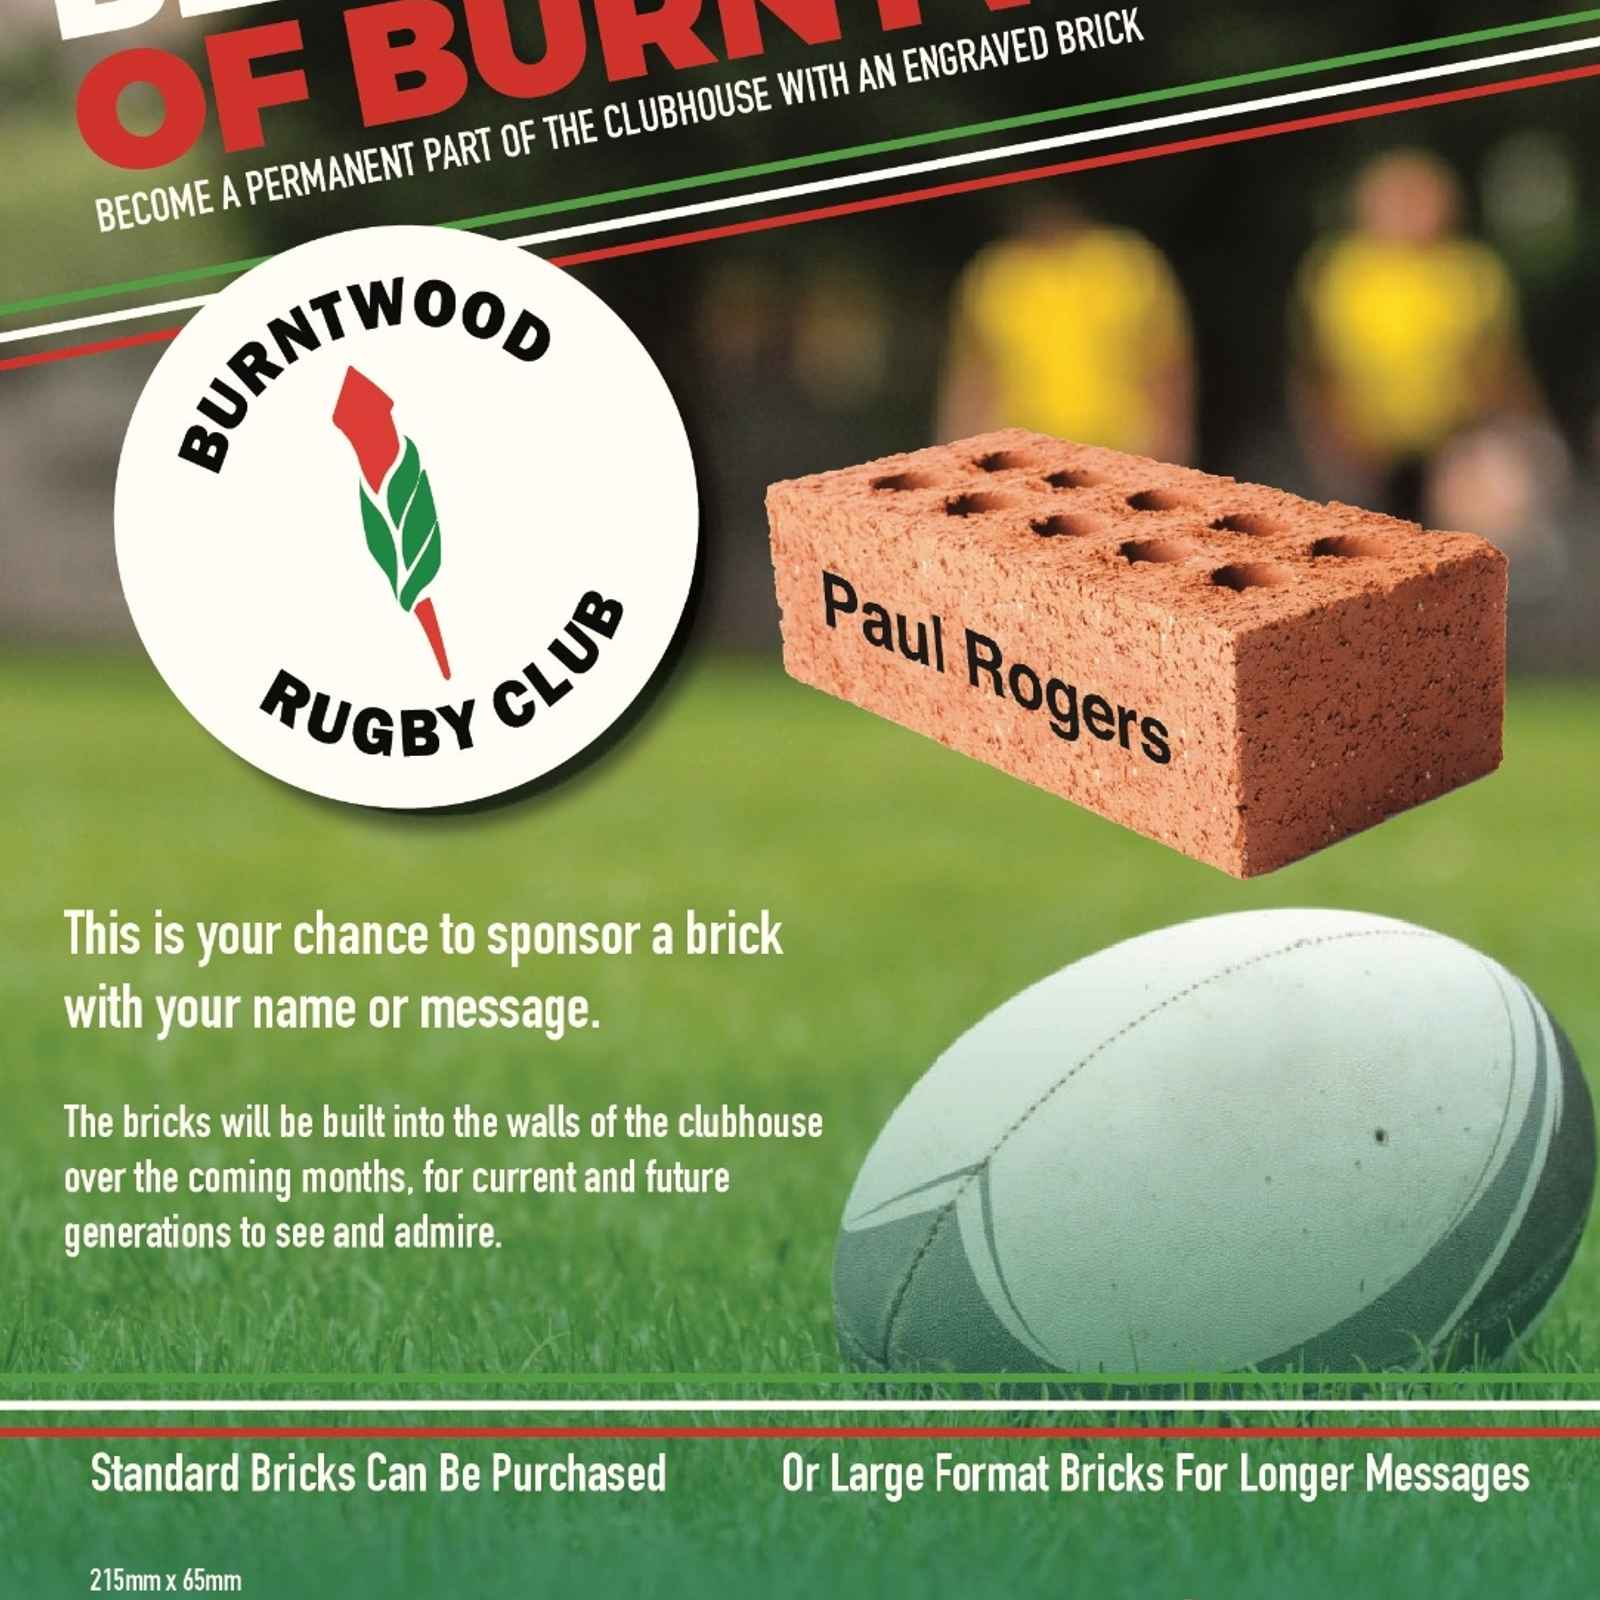 BUY A BRICK FOR YOUR CLUB